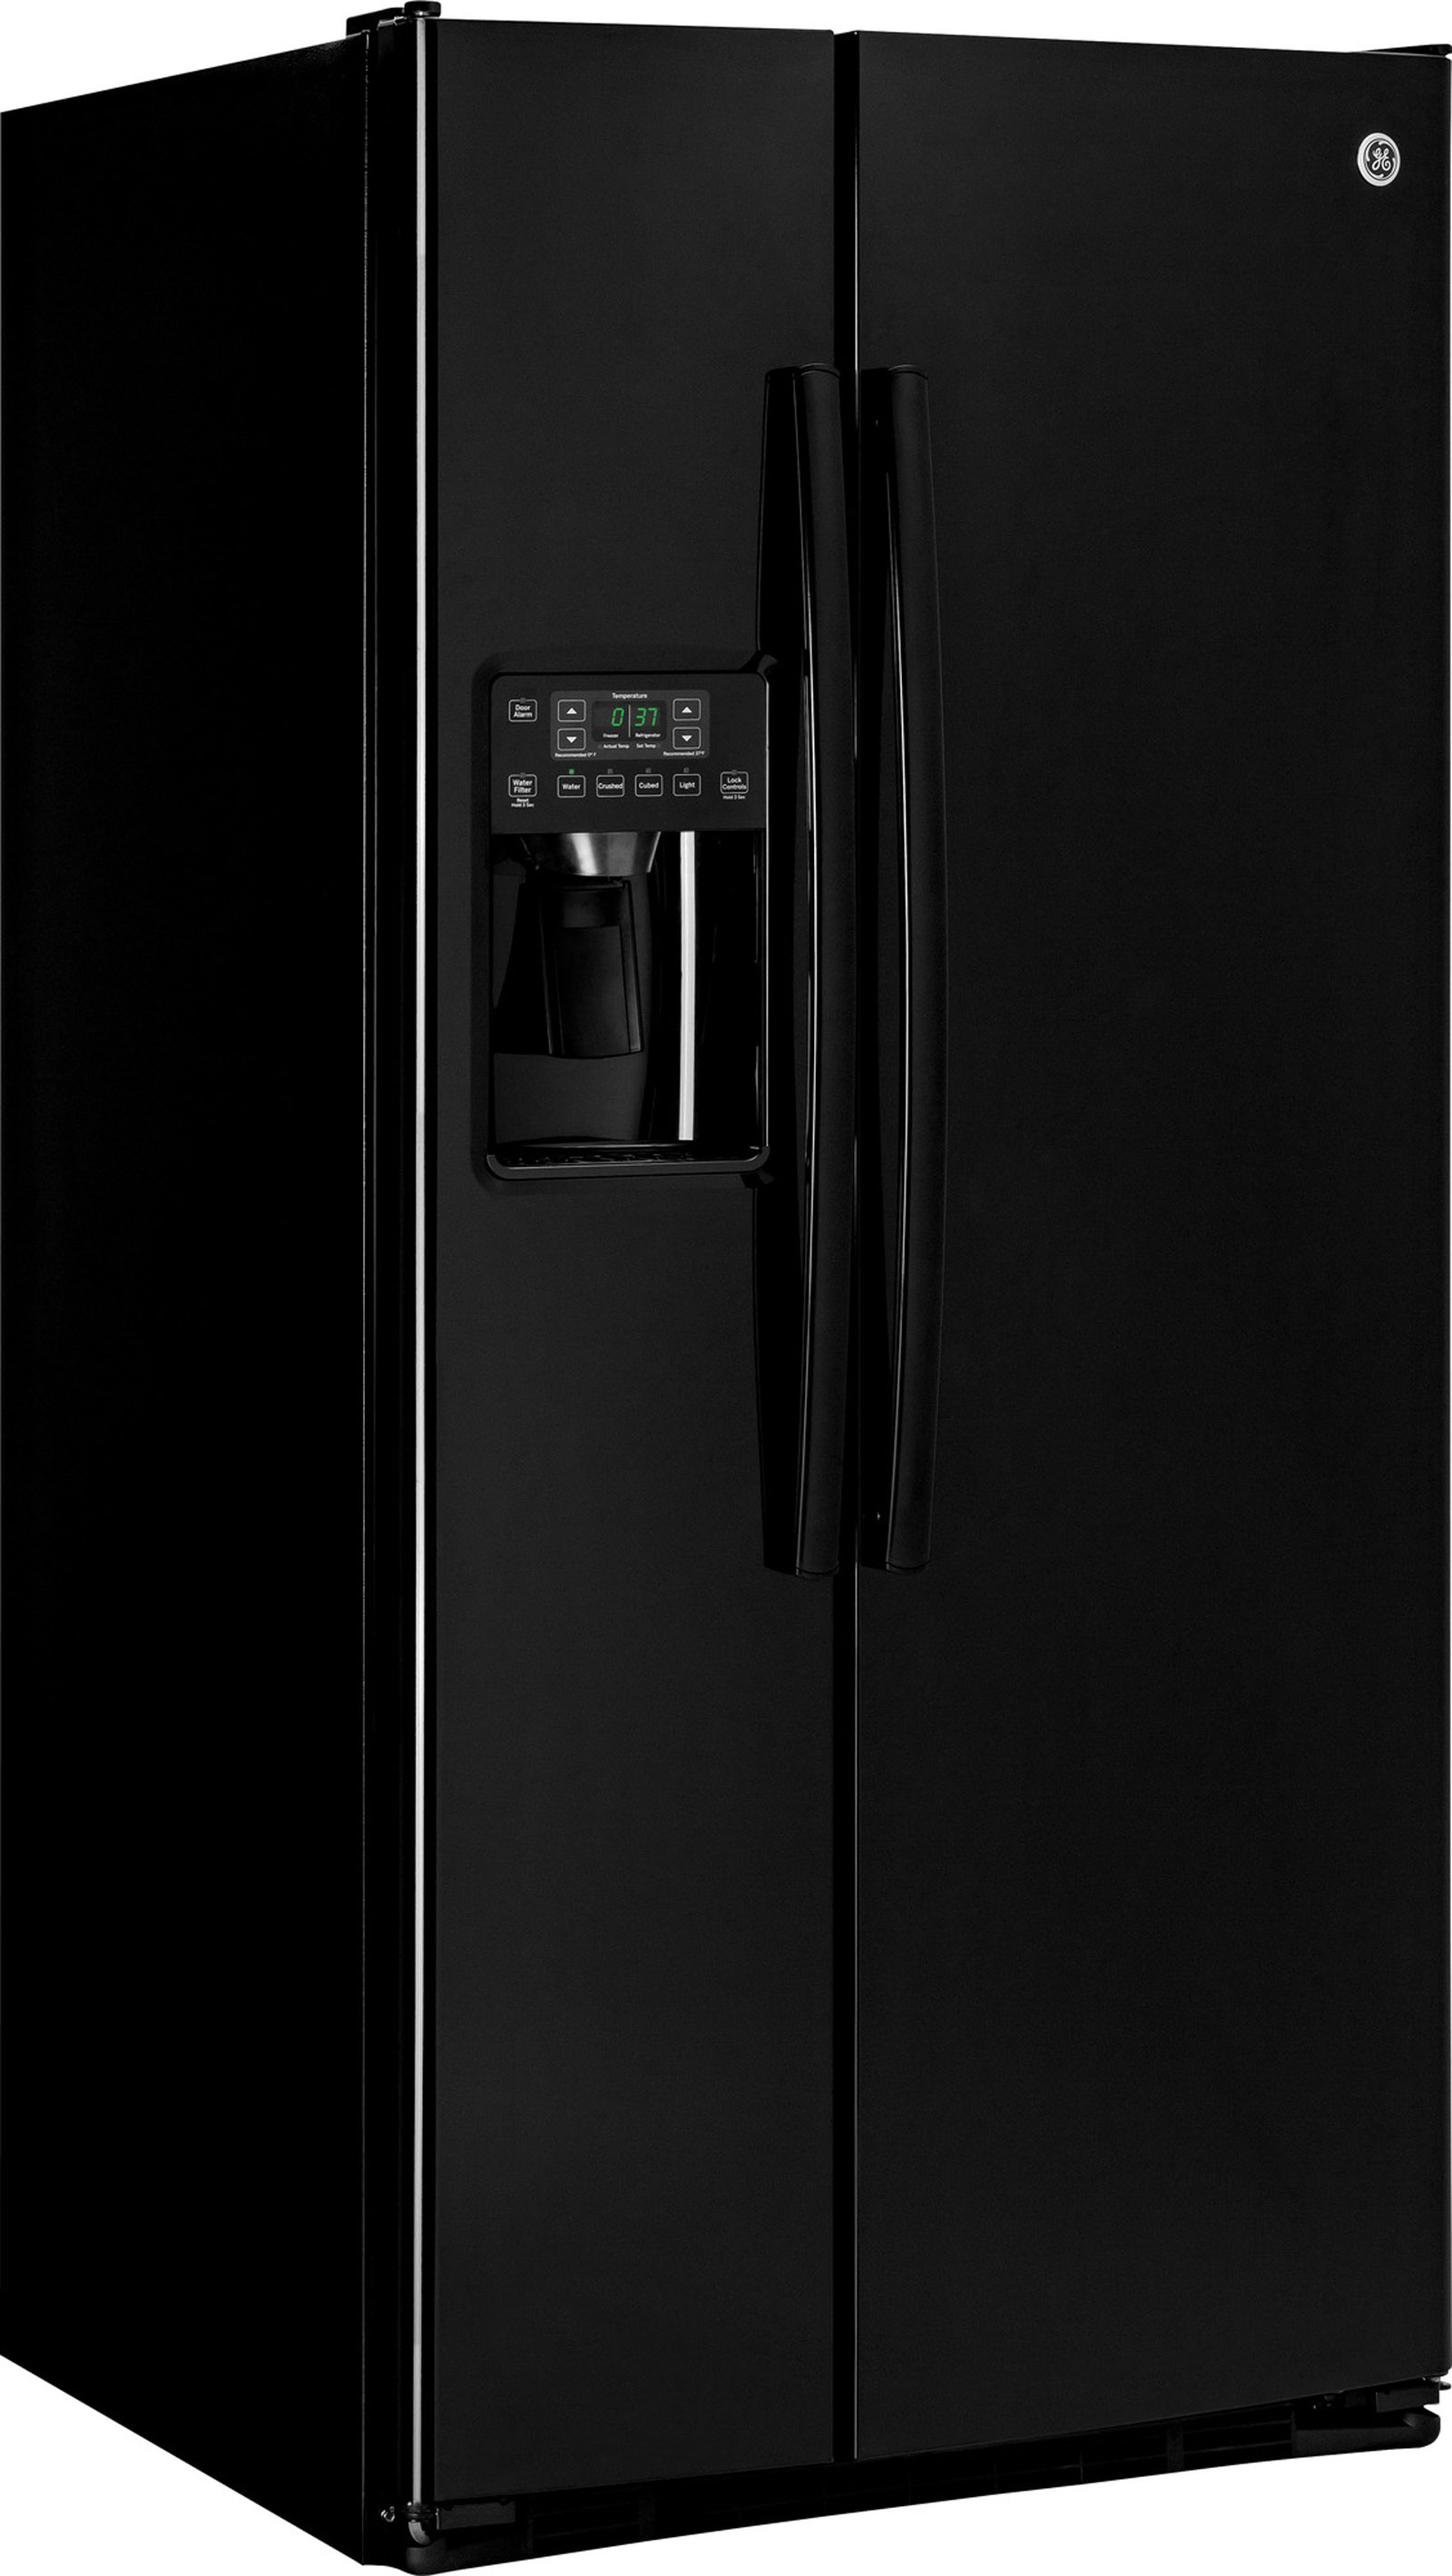 GE Appliances GSS23HGHBB 22.5 cu. ft. Side-By-Side Refrigerator - Black